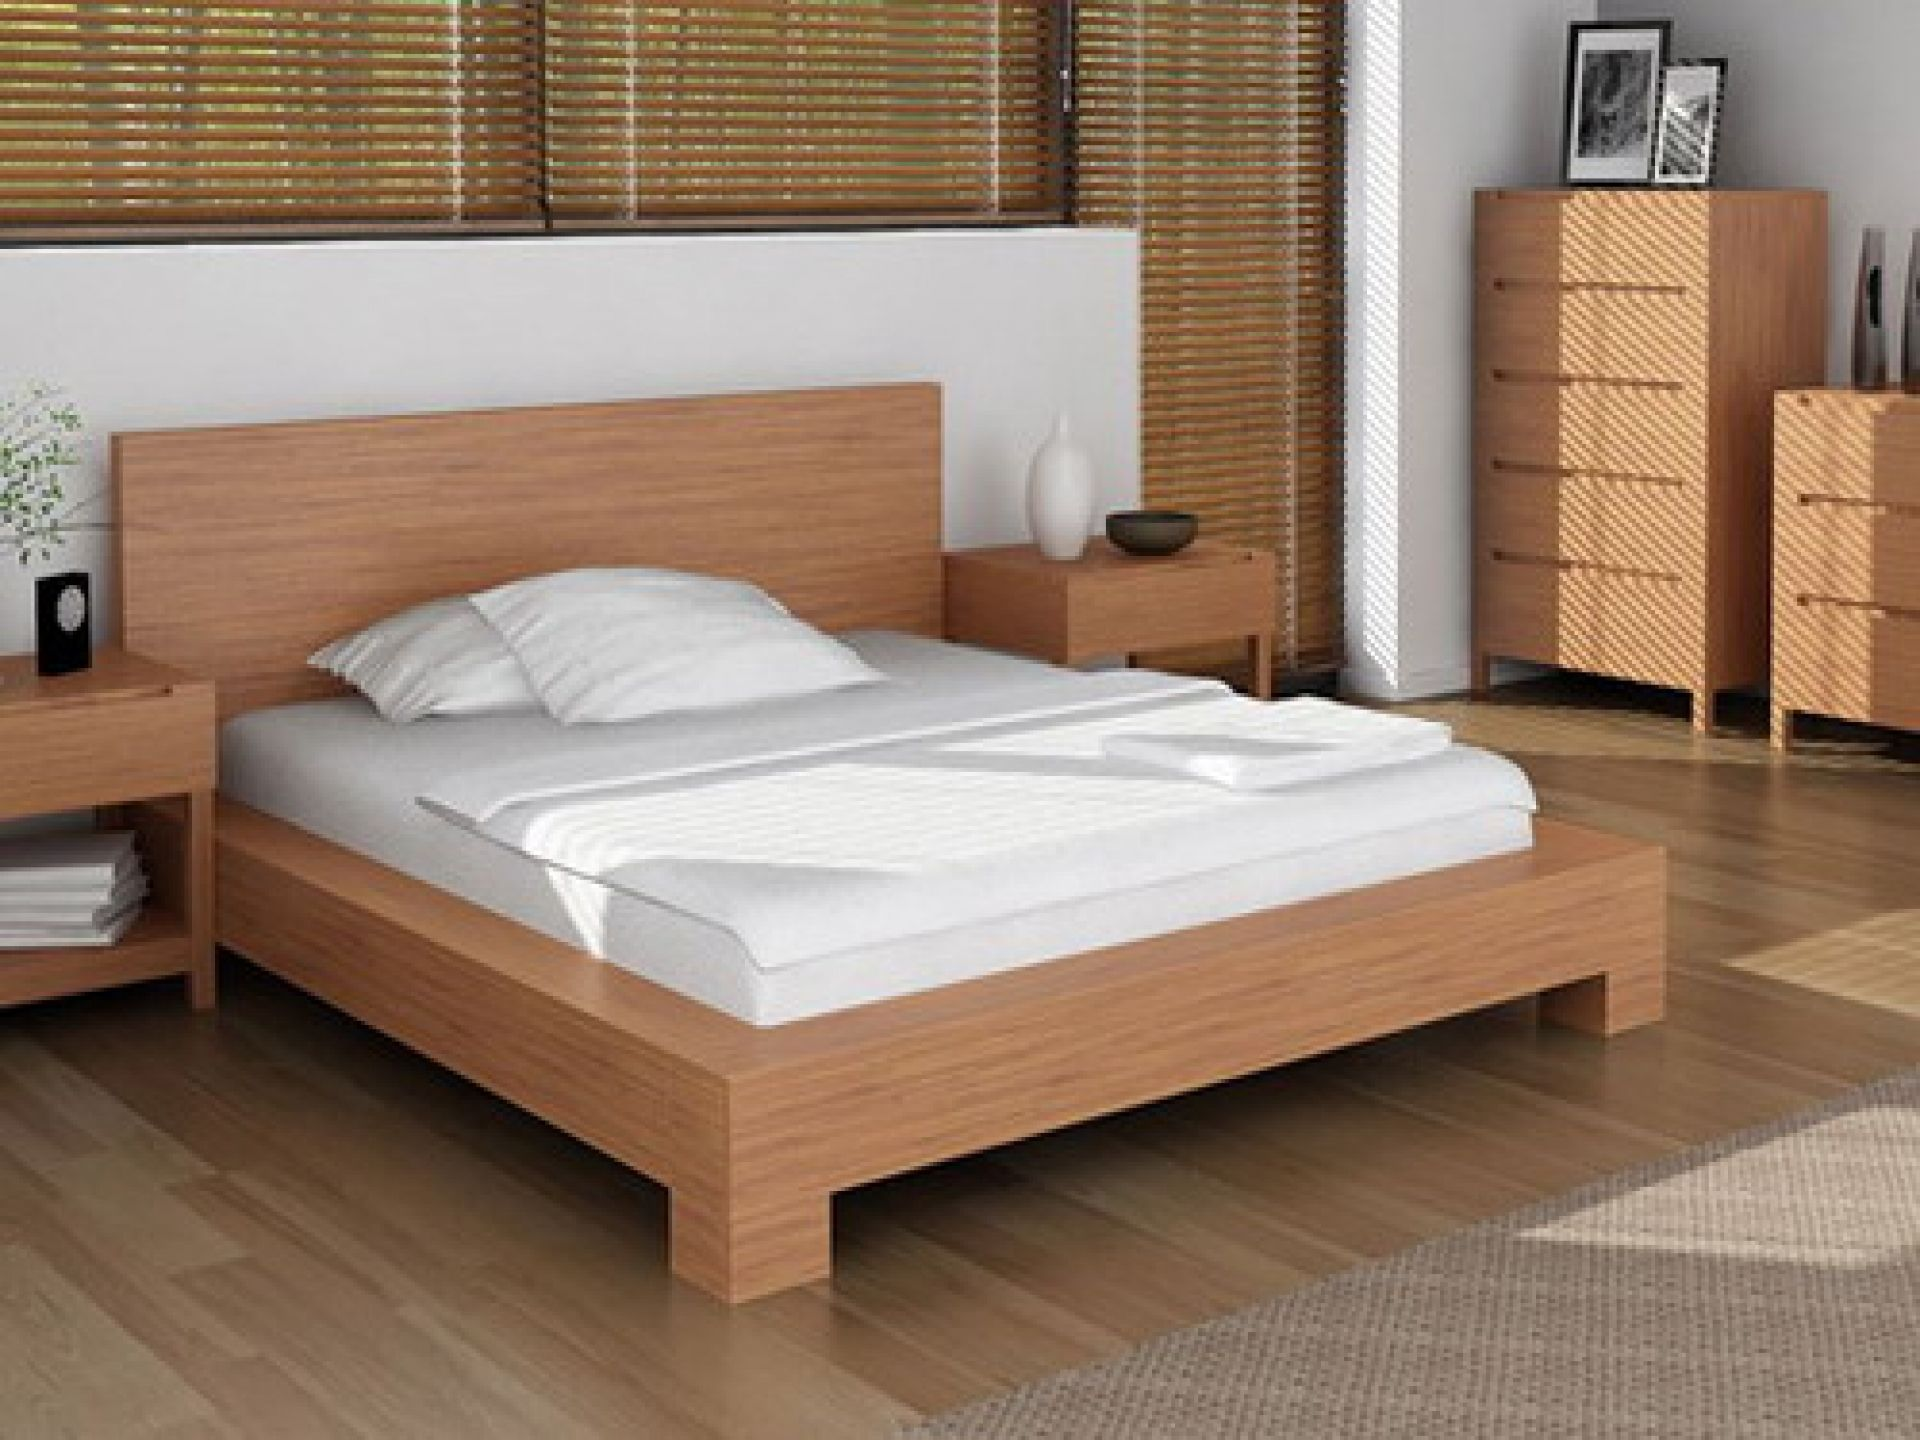 Canvas Of Simple Wood Bed Frame Ideas Bedroom Design: simple wooden bed designs